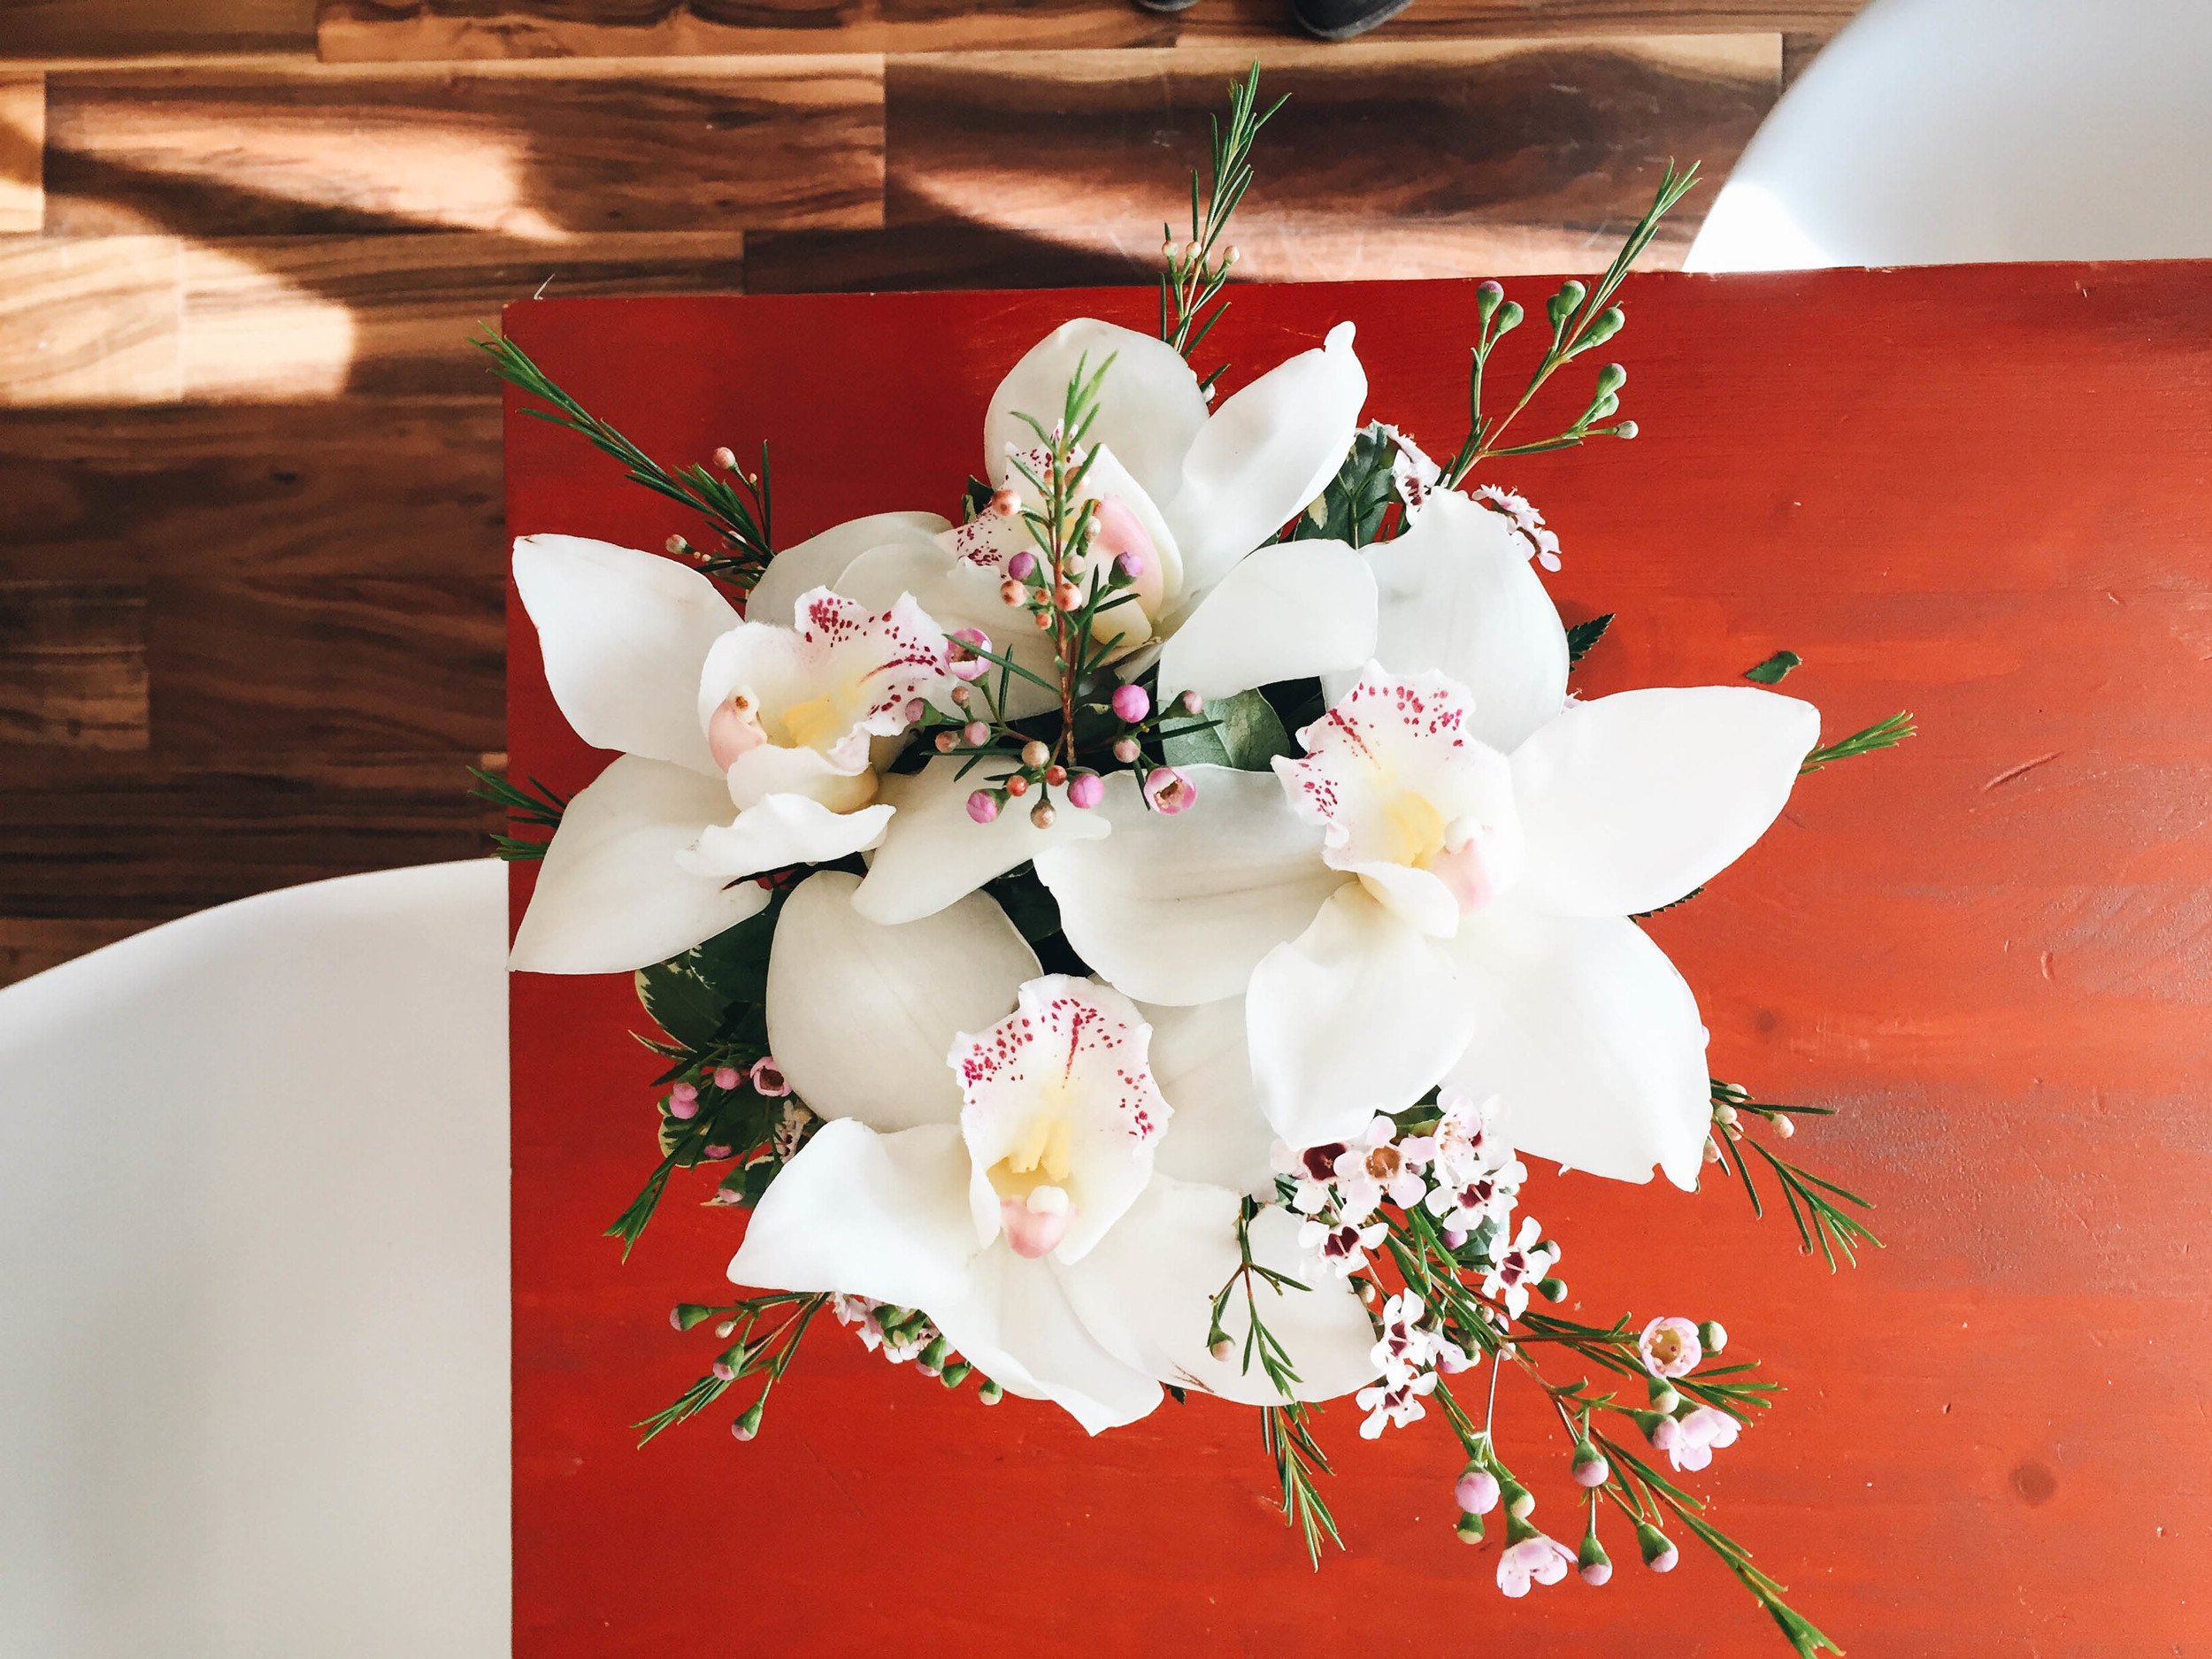 {Beautiful flowers from a special someone on Valentine's day}